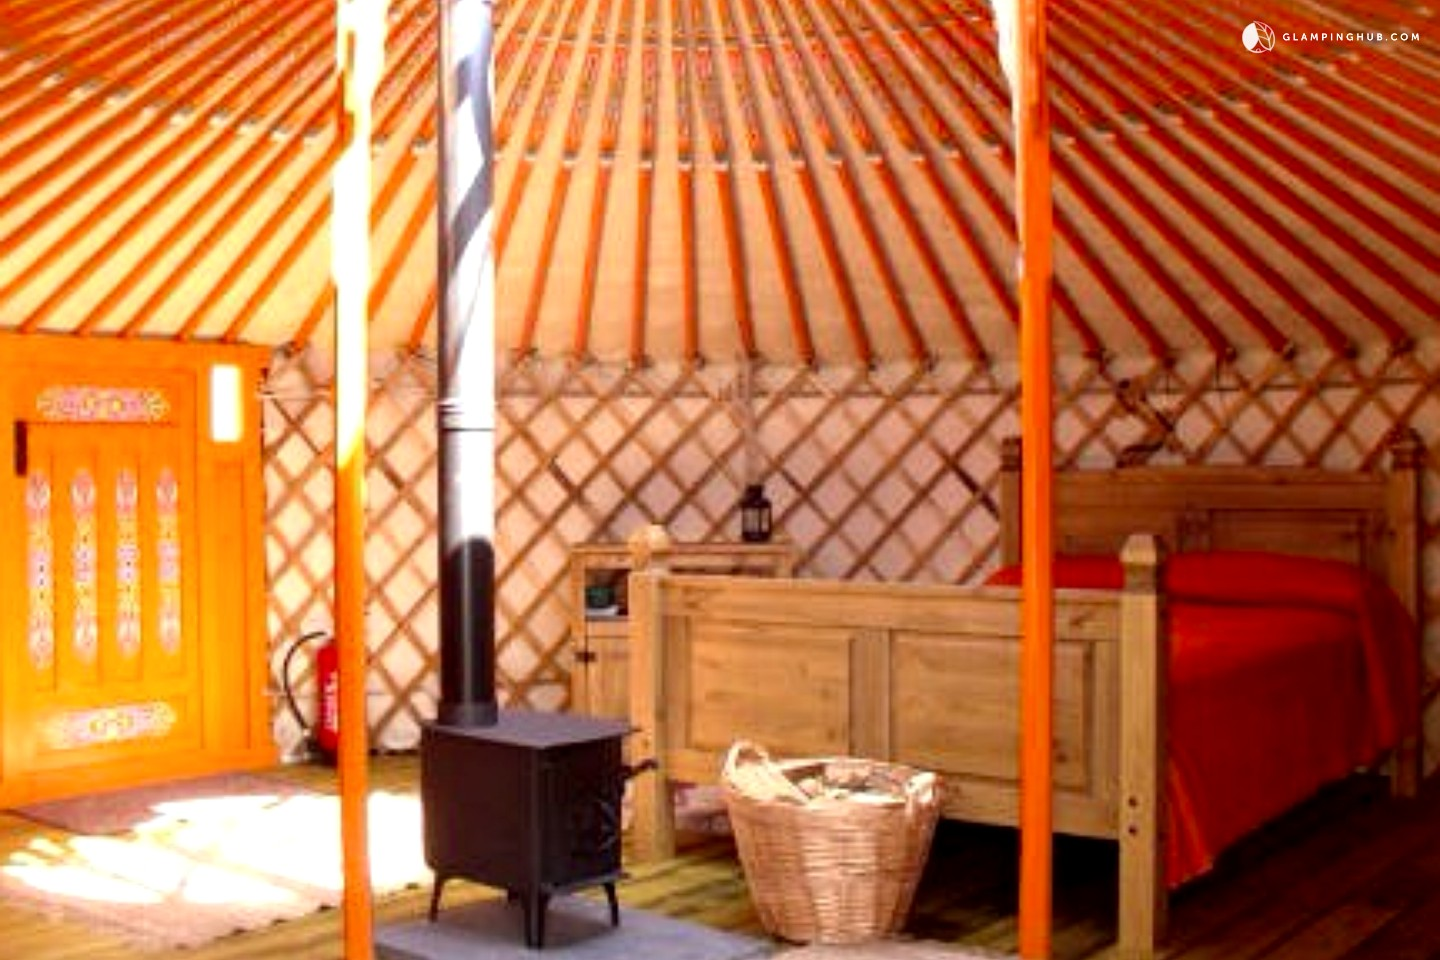 Glamping In Wales Authentic Yurt For Rent In Wales